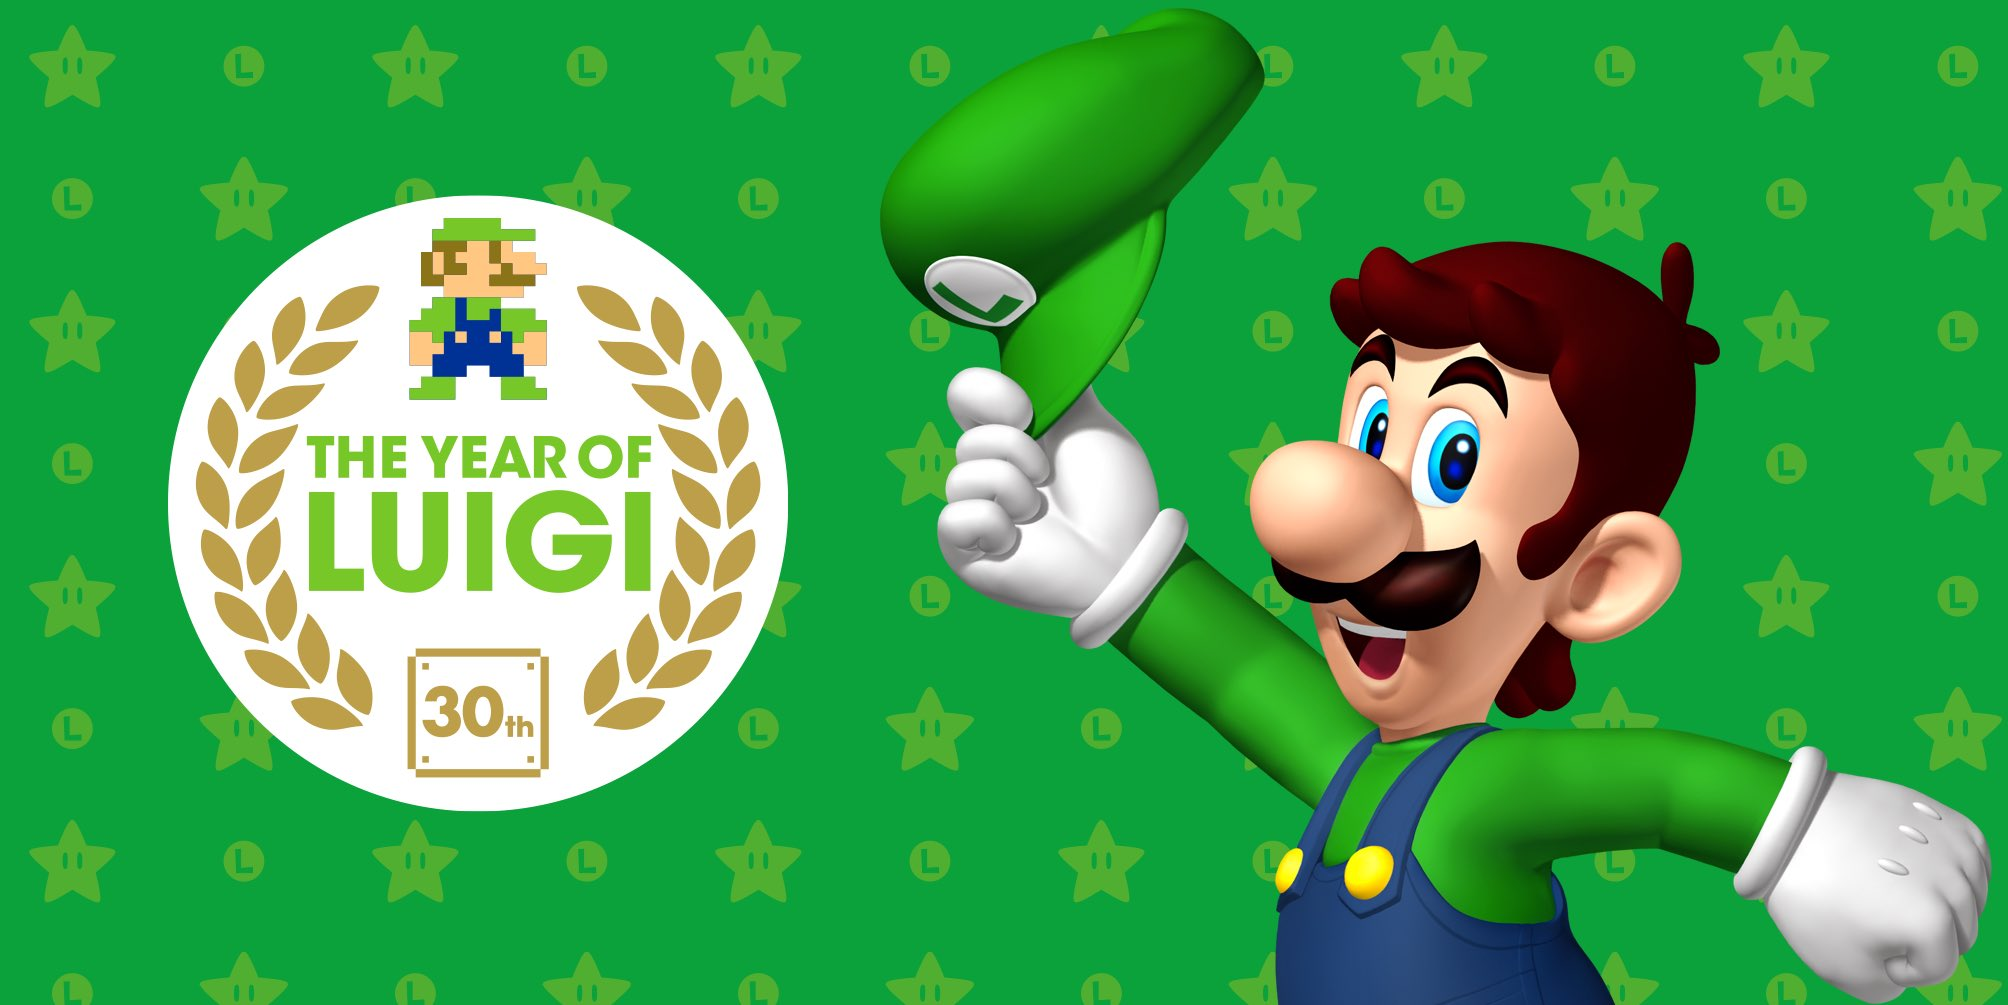 Random Time! - Official Super Mario UK Twitter account reminds us of 2013, The Year of Luigi